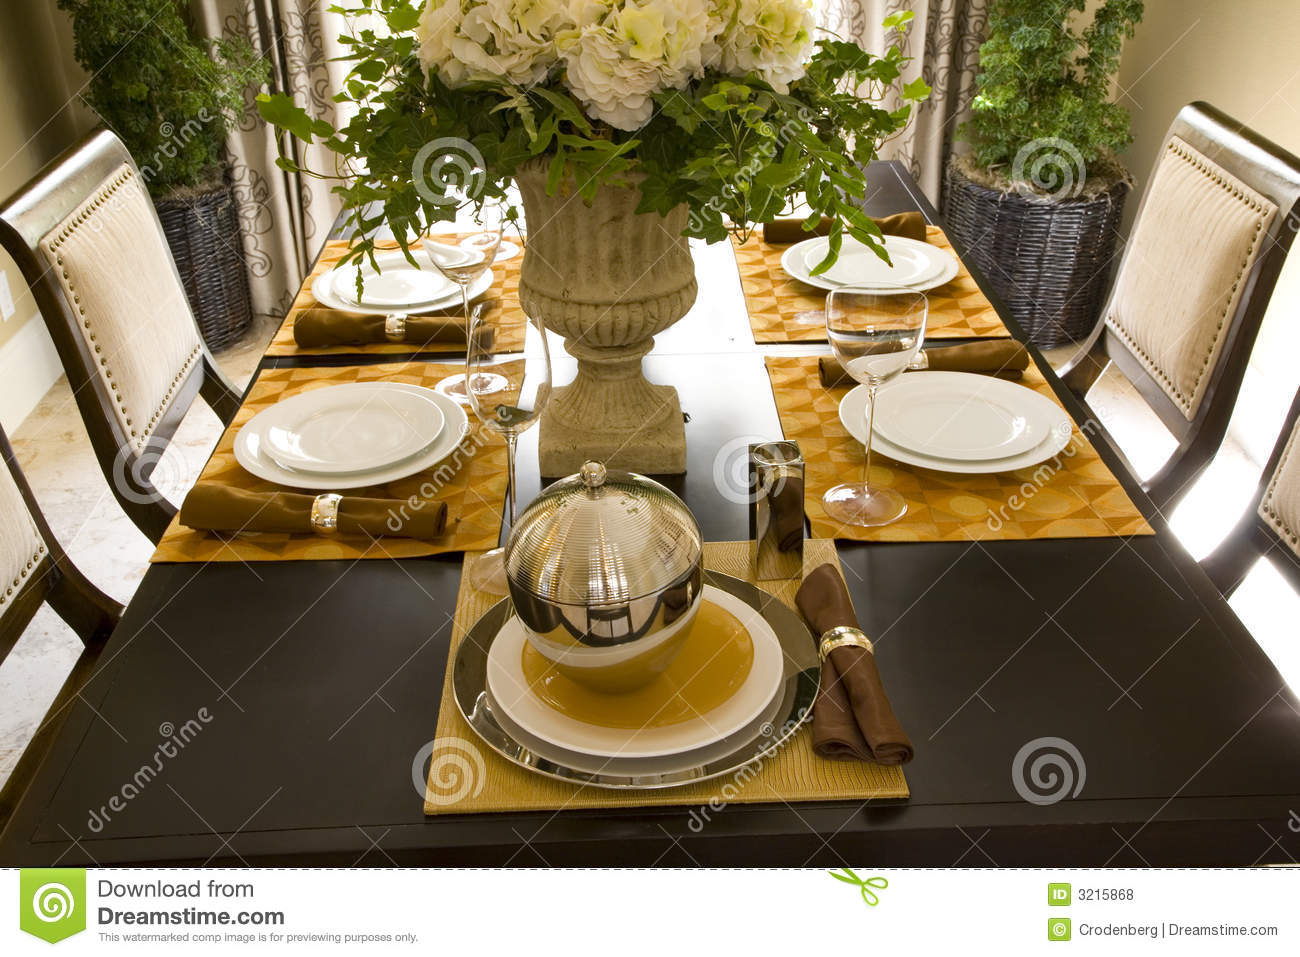 Dining table decor 1707 royalty free stock photos image for Decoration de table